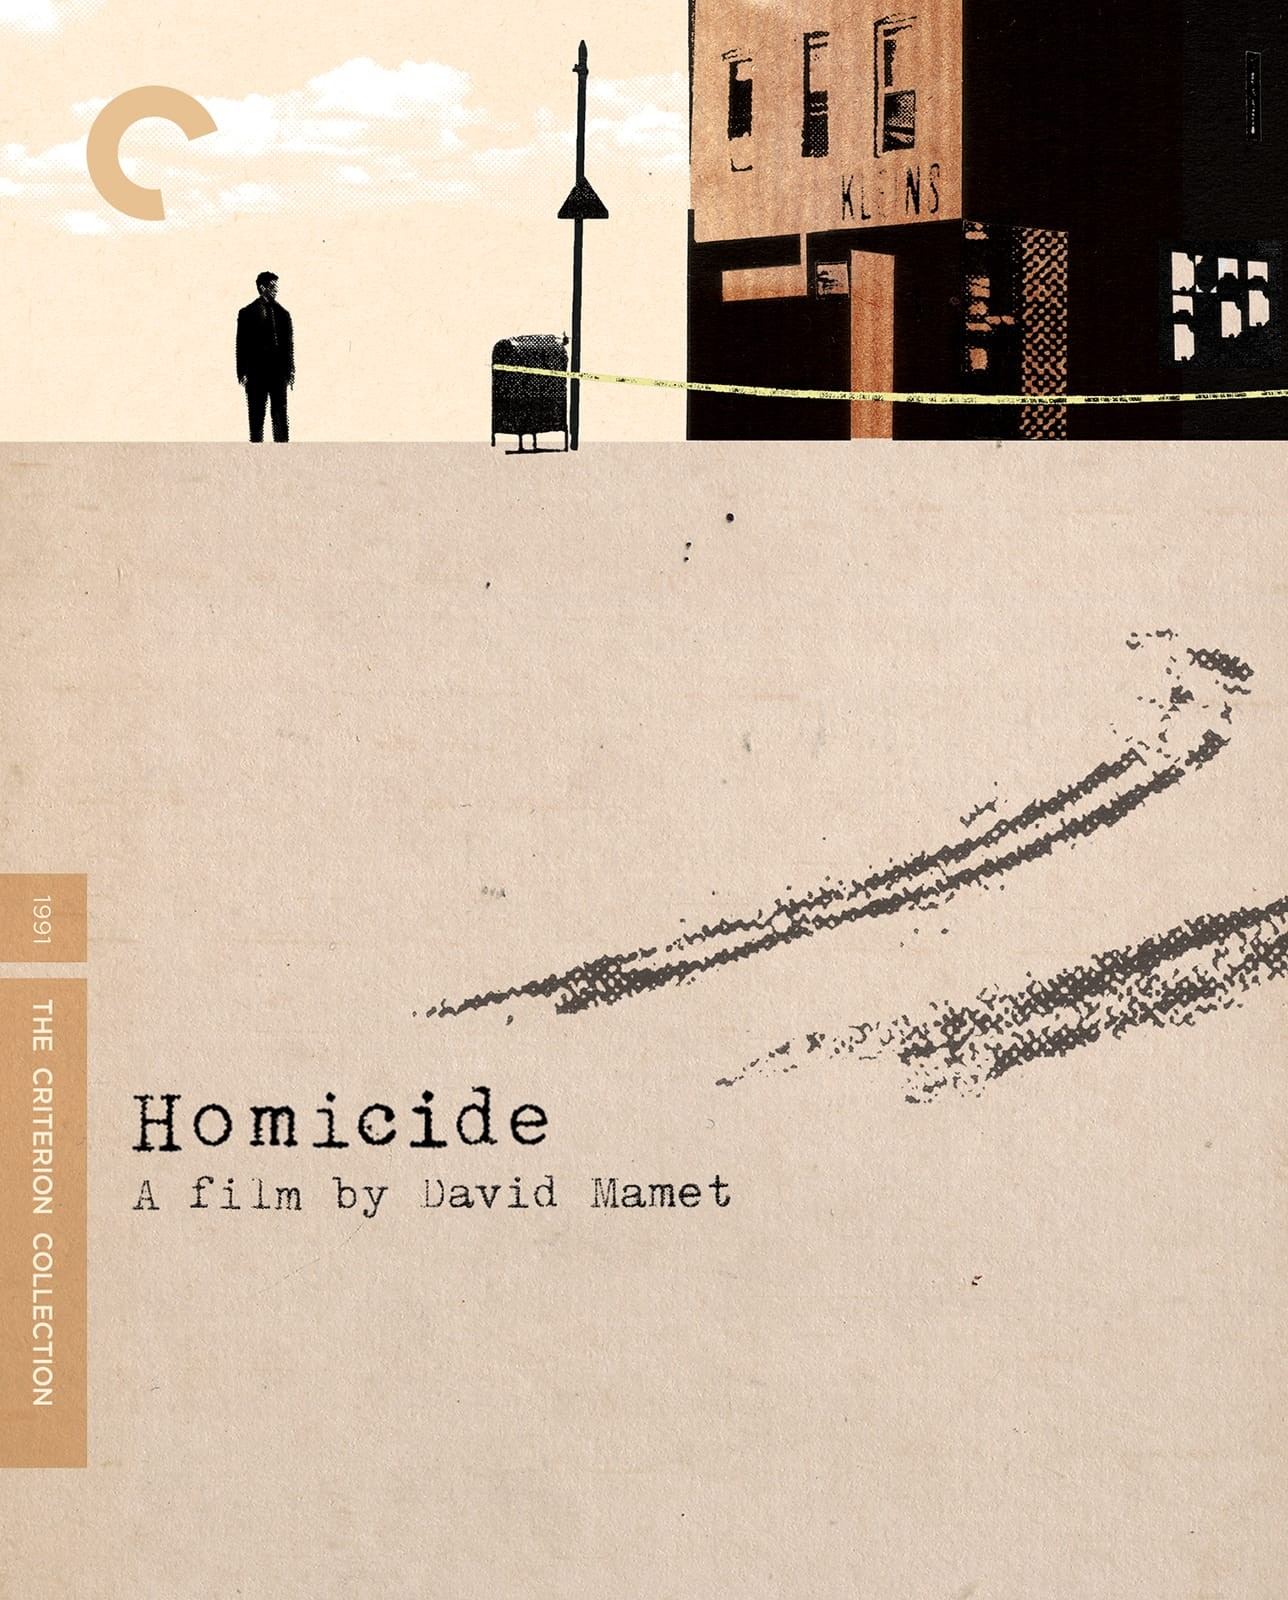 Image result for homicide film